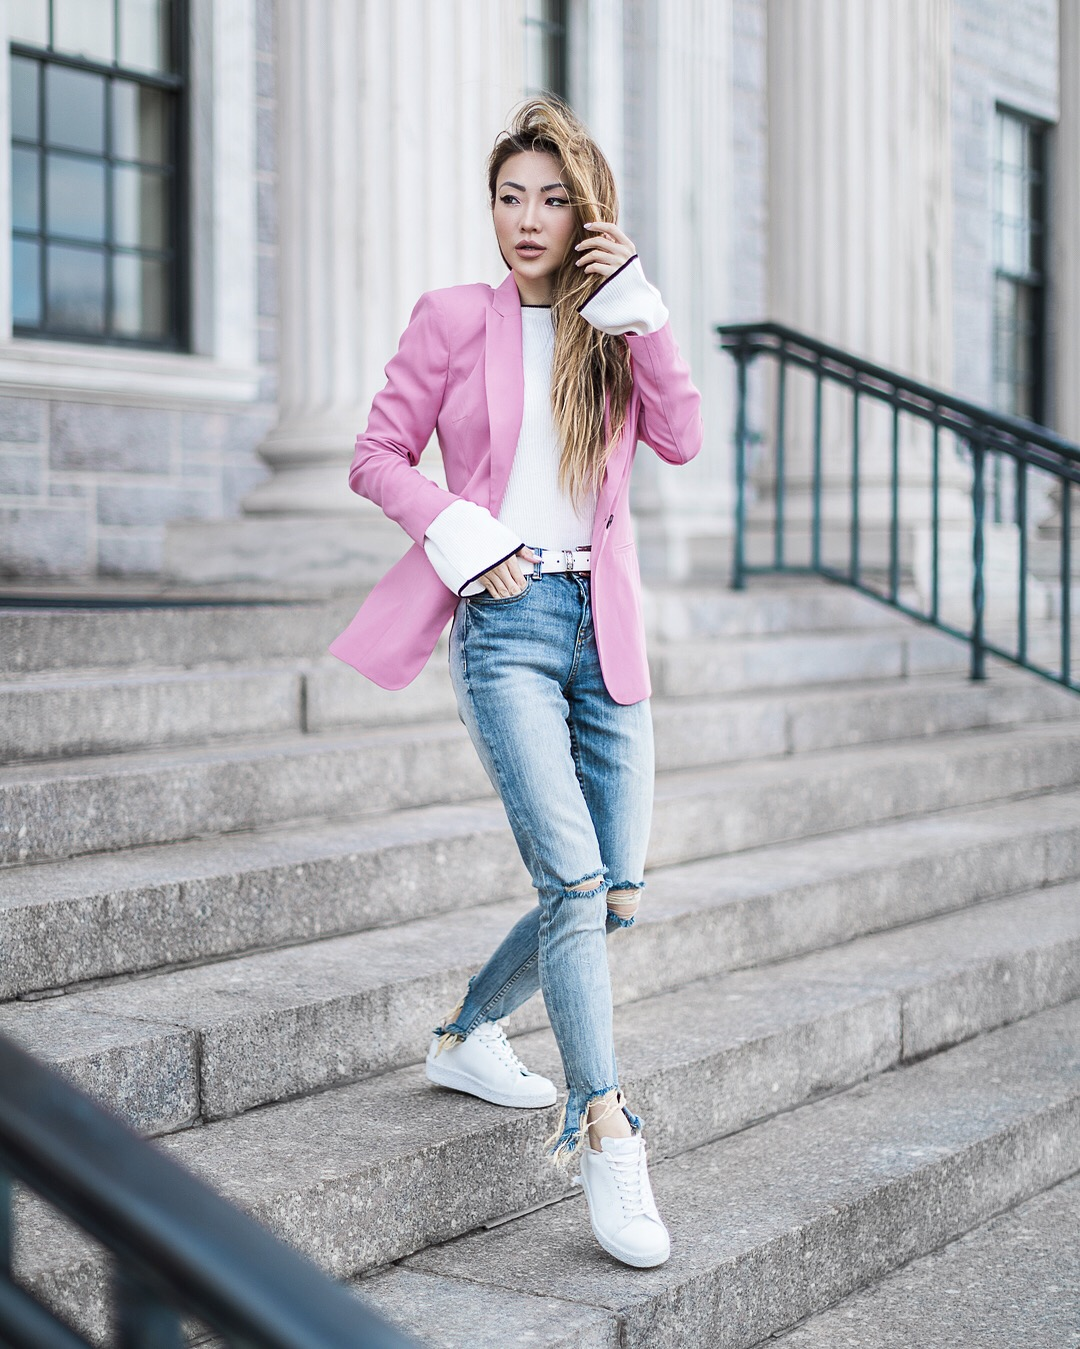 Thanksgiving Outfit Ideas - Pink Blazer with Denim // NotJessFashion.com